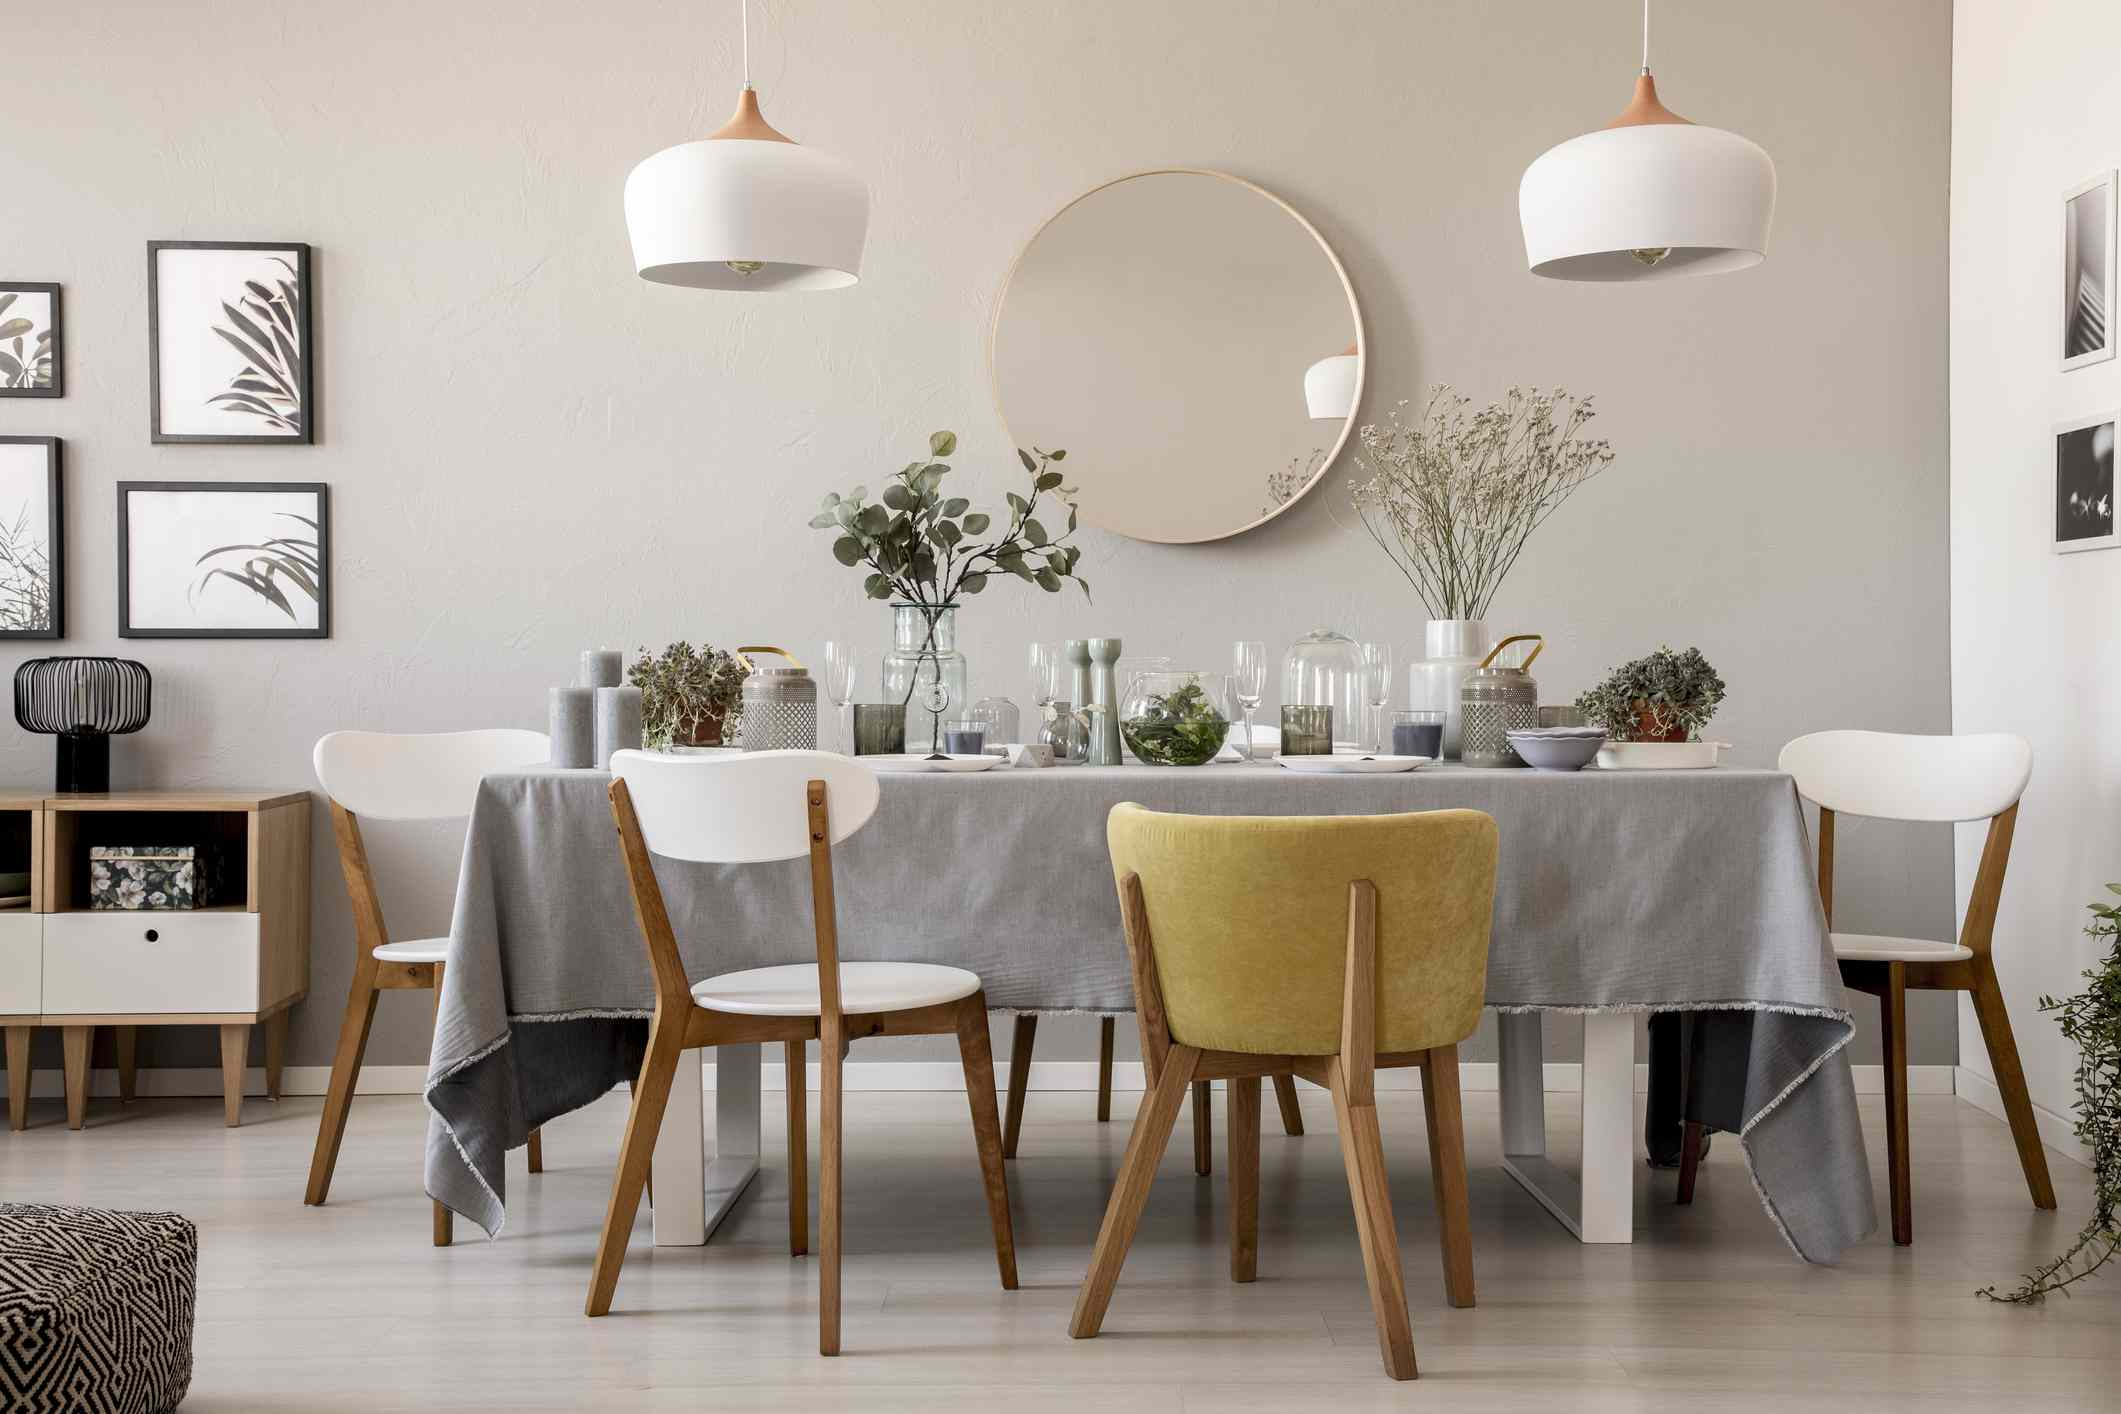 Gray dining room with chairs, lighting and neutral colors